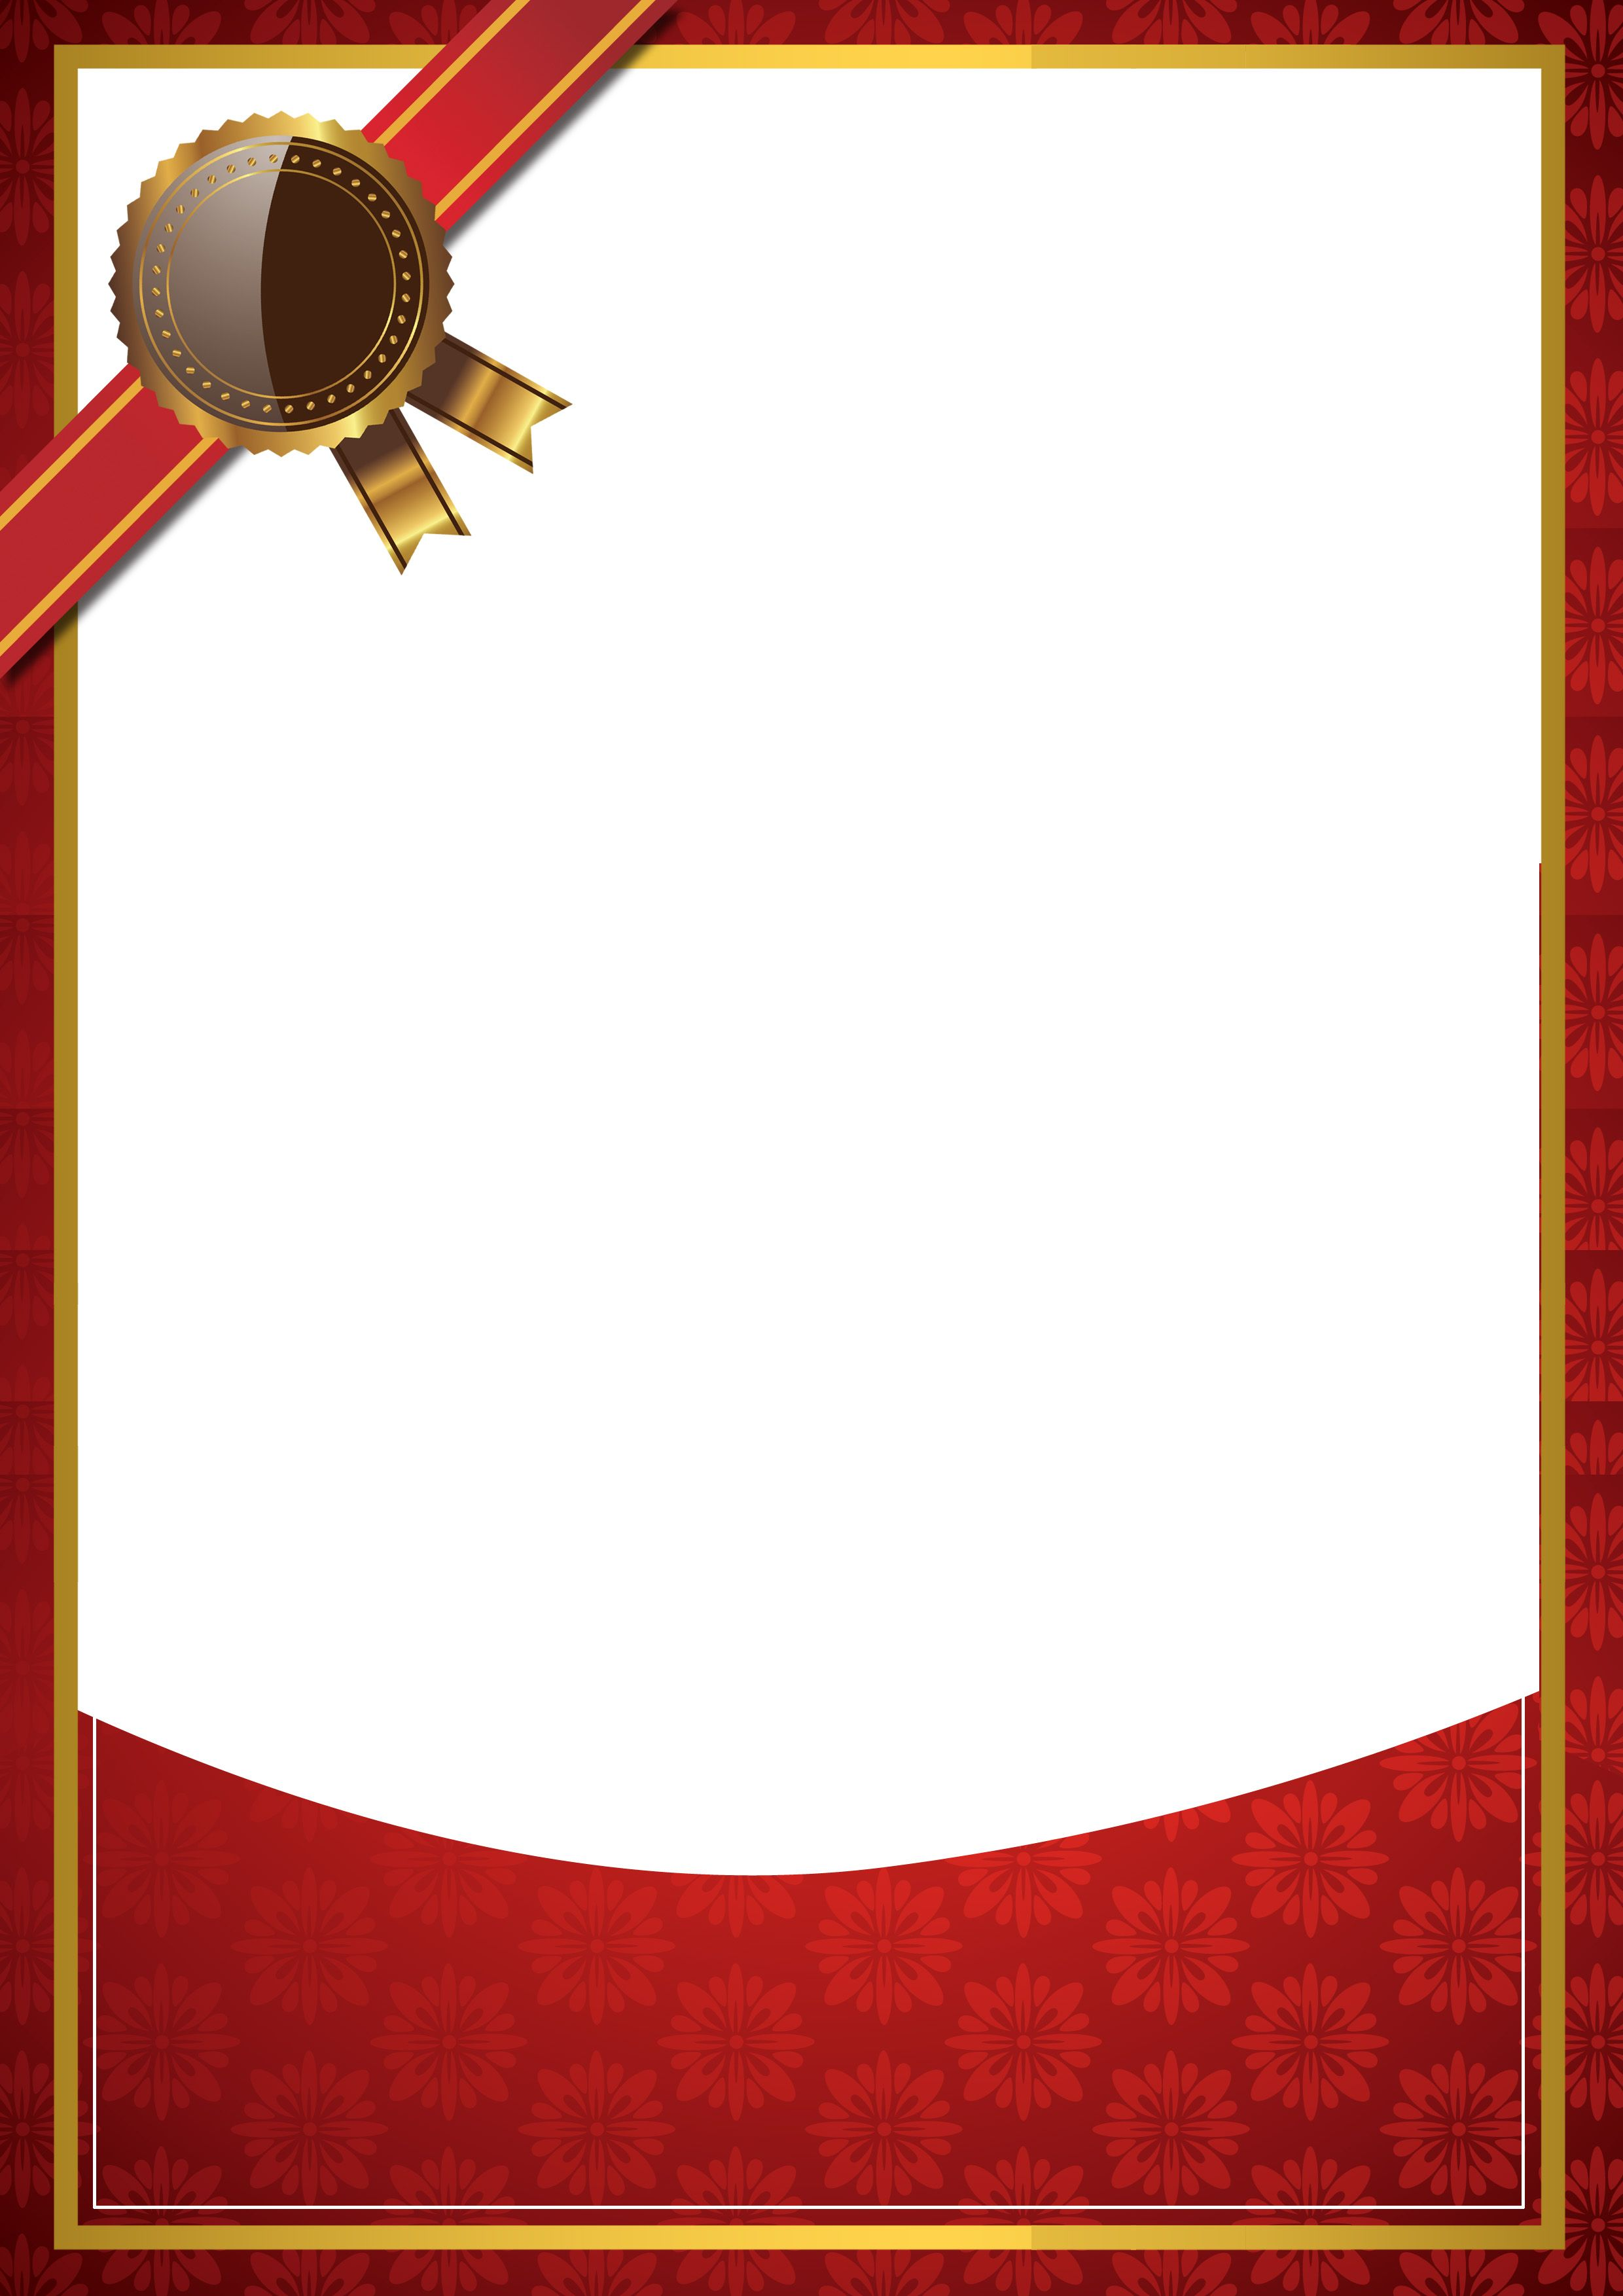 Simple Red Background Border Certificate in 2020 ...Red Graduation Borders